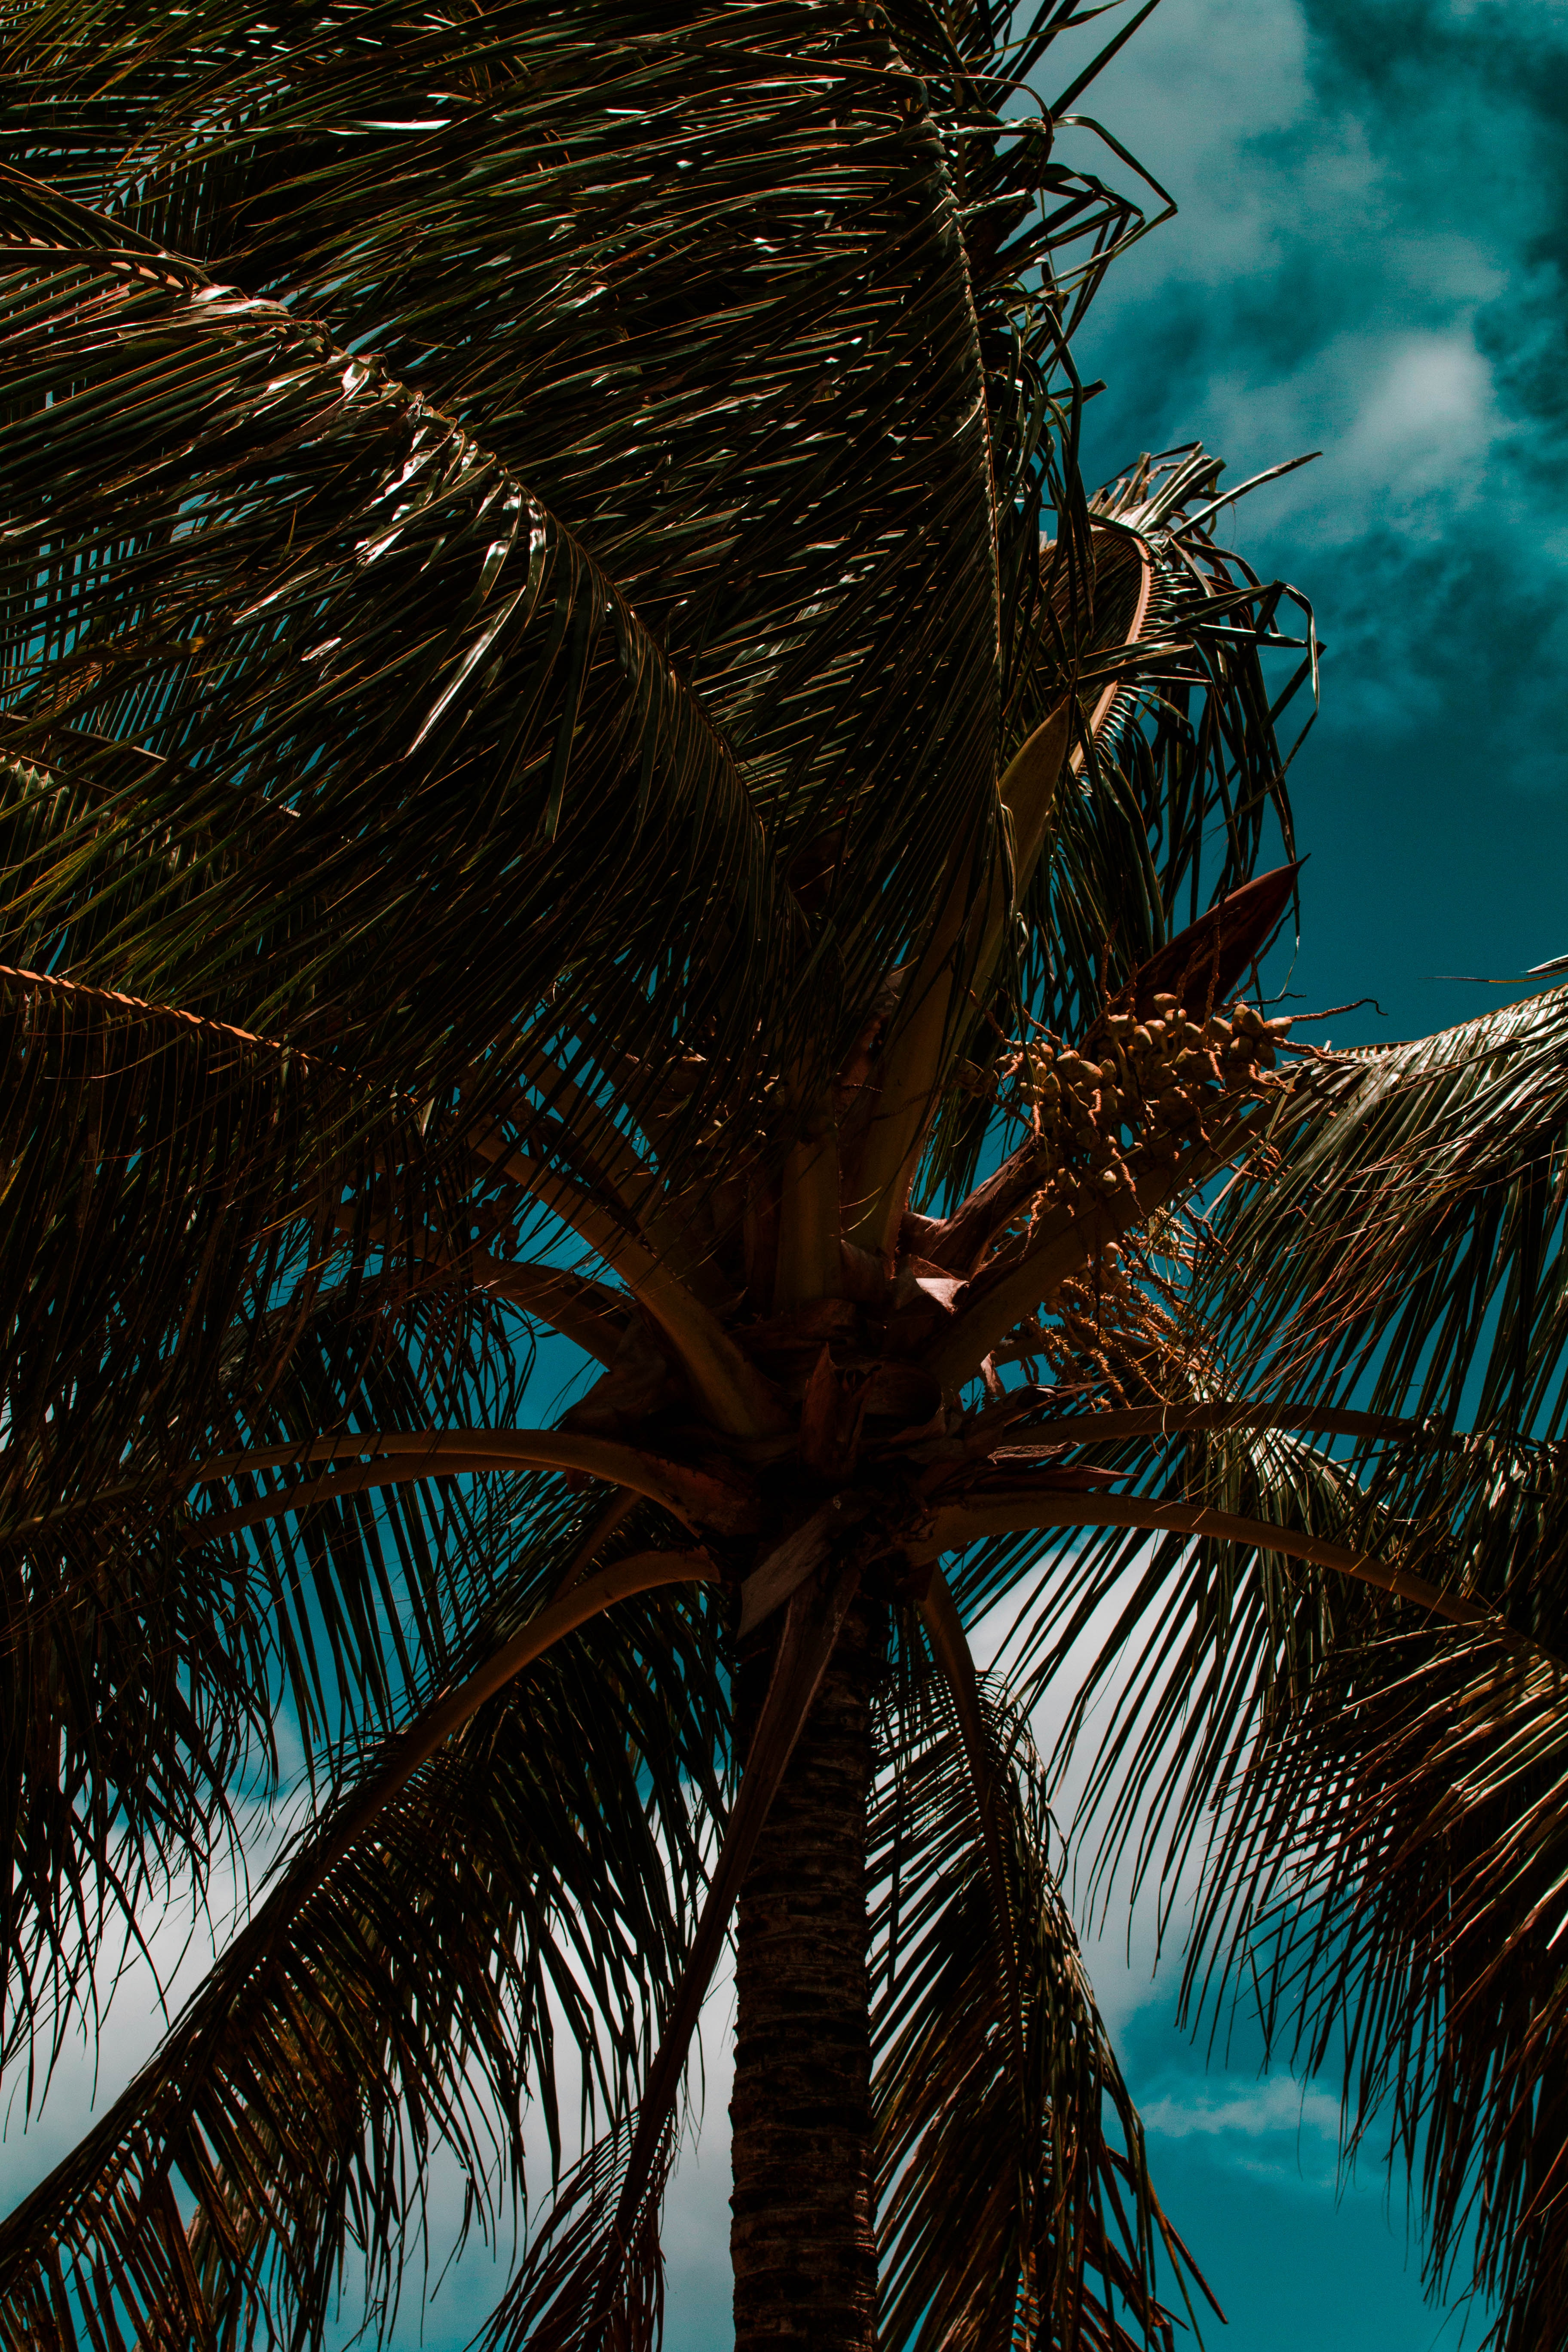 55488 download wallpaper Nature, Palm, Branches, Leaves, Sky, Clouds, Tropics, Wind screensavers and pictures for free